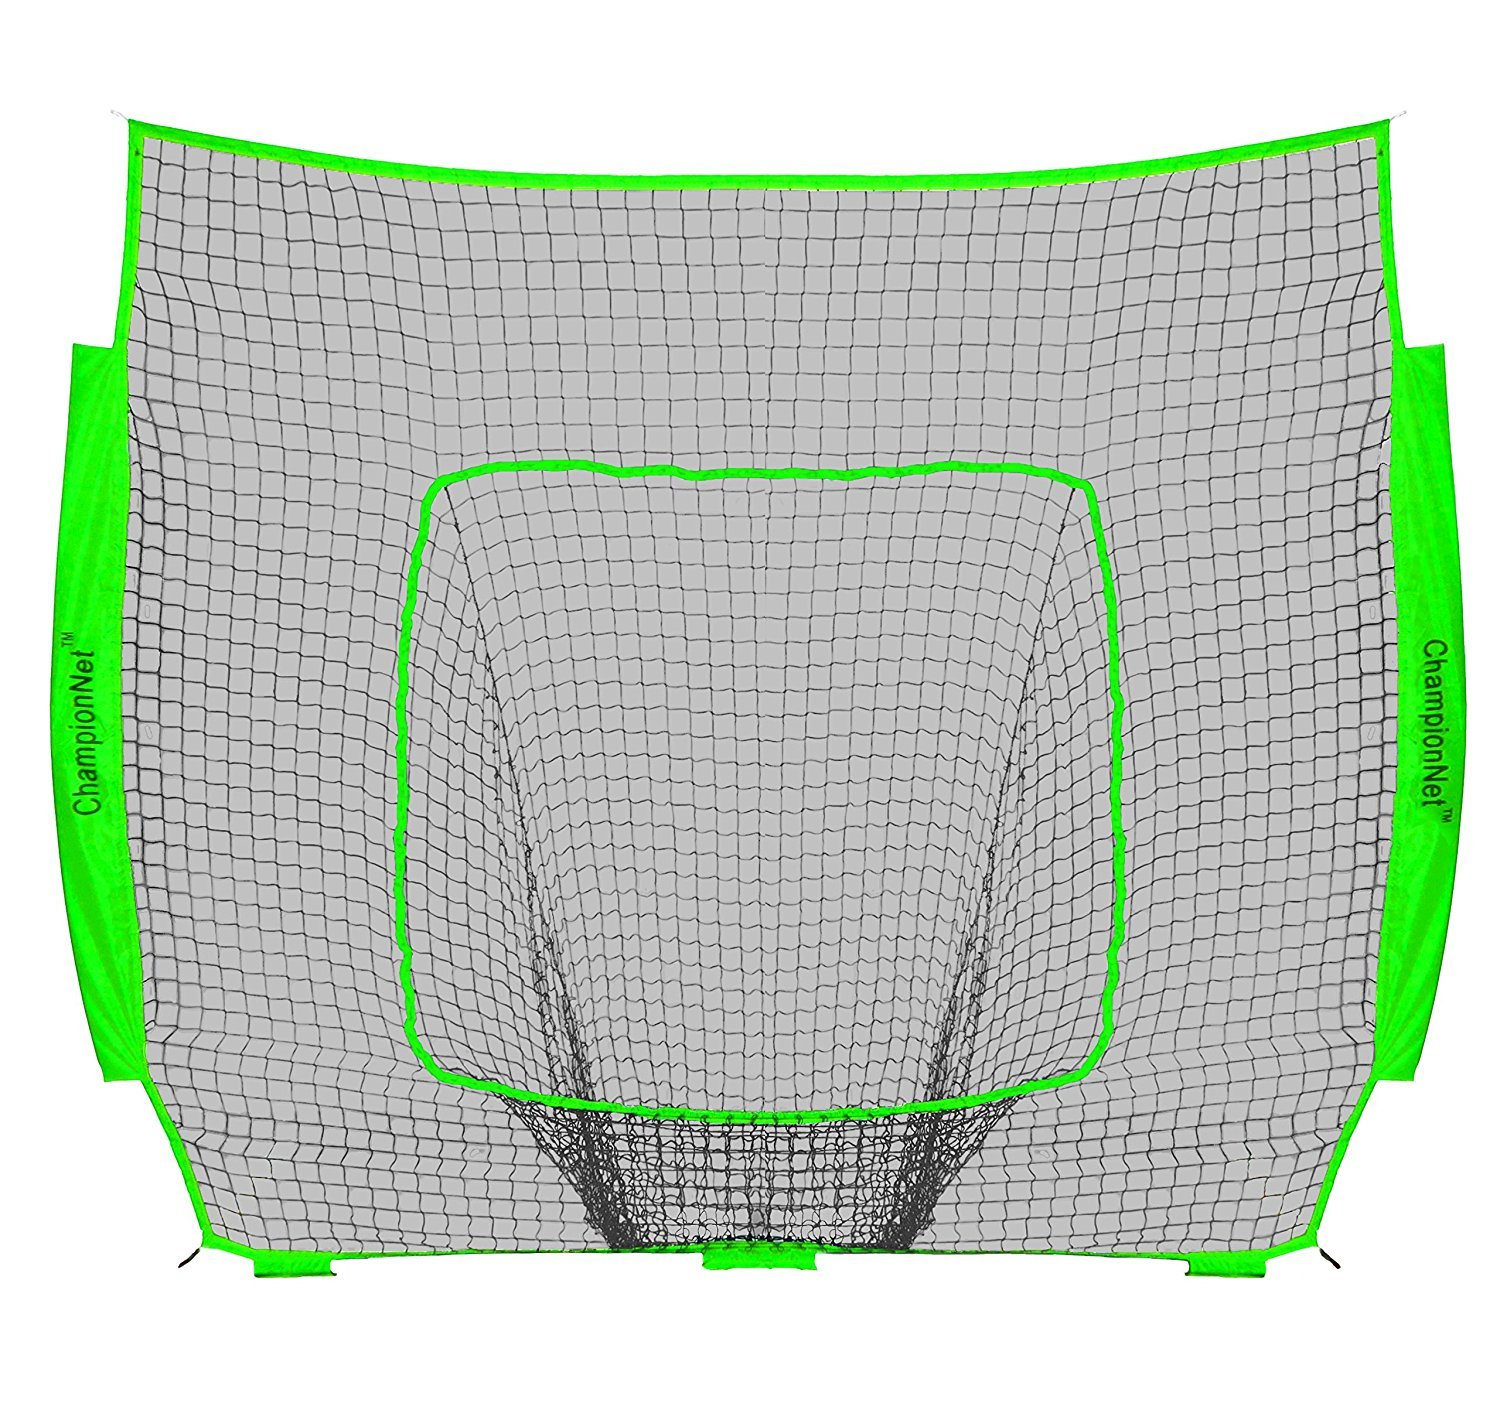 ChampionNet Baseball/Softball 7' x 7' Hitting Net Replacement NO Frame - Lime Green by ChampionNet